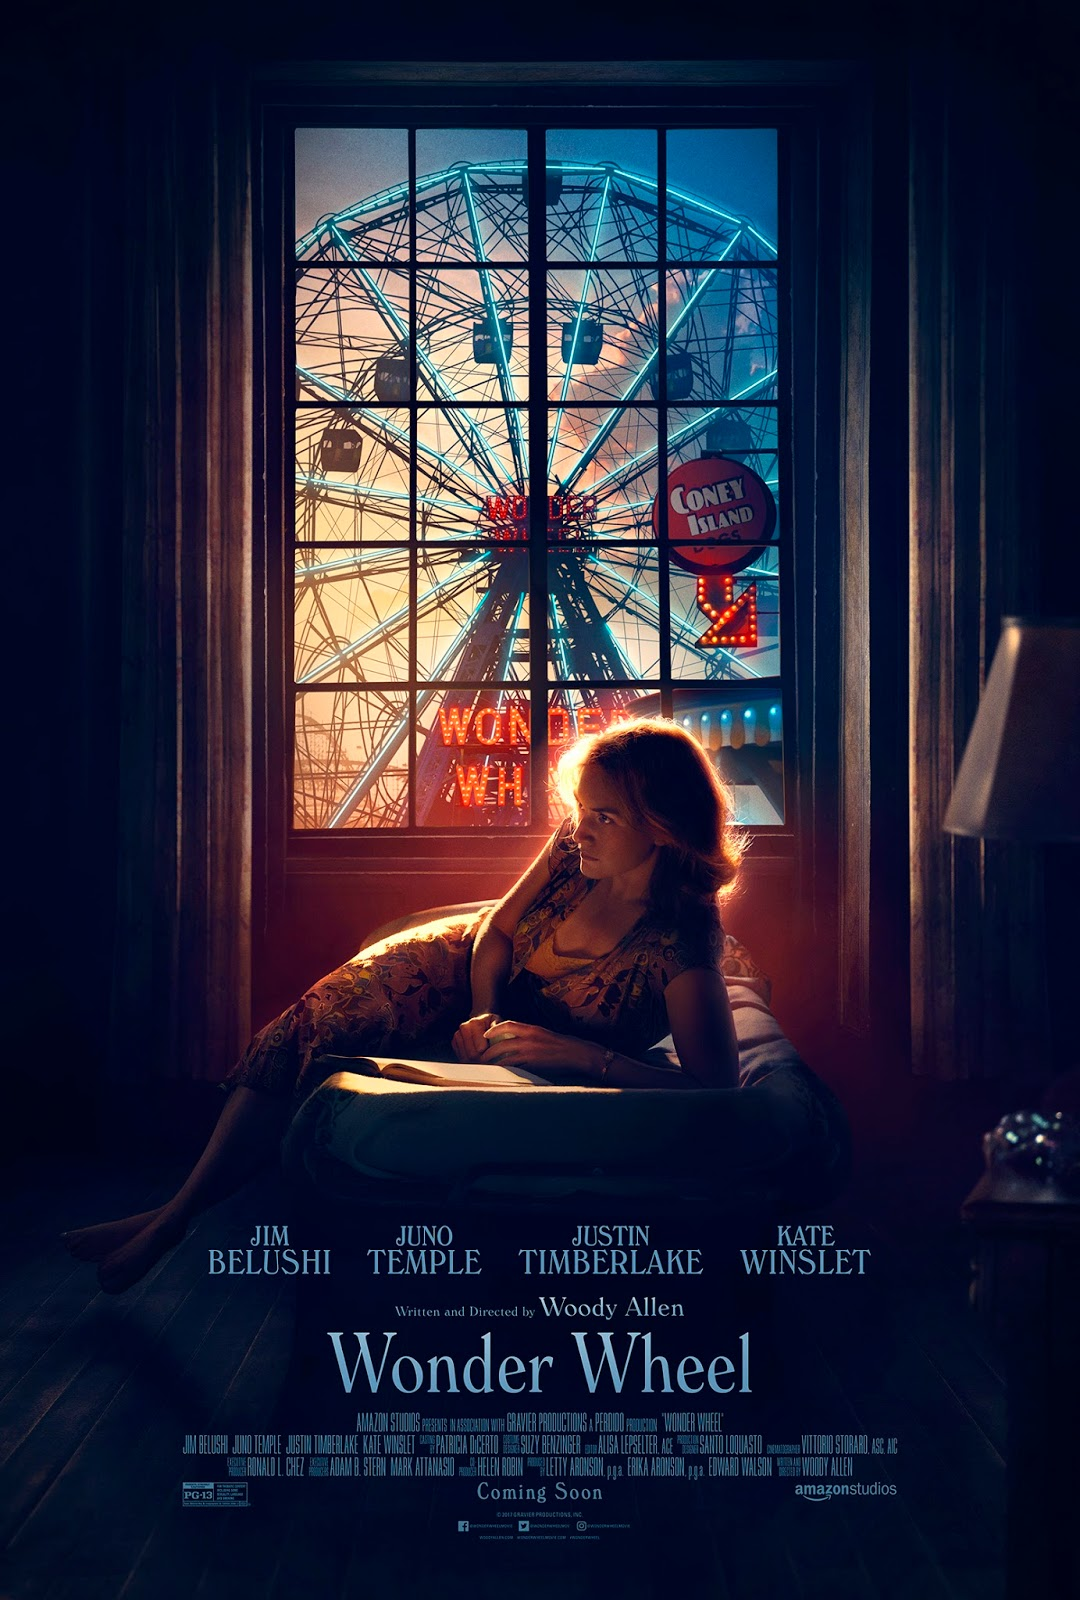 enter for a chance to win passes to see wonder wheel in dallas